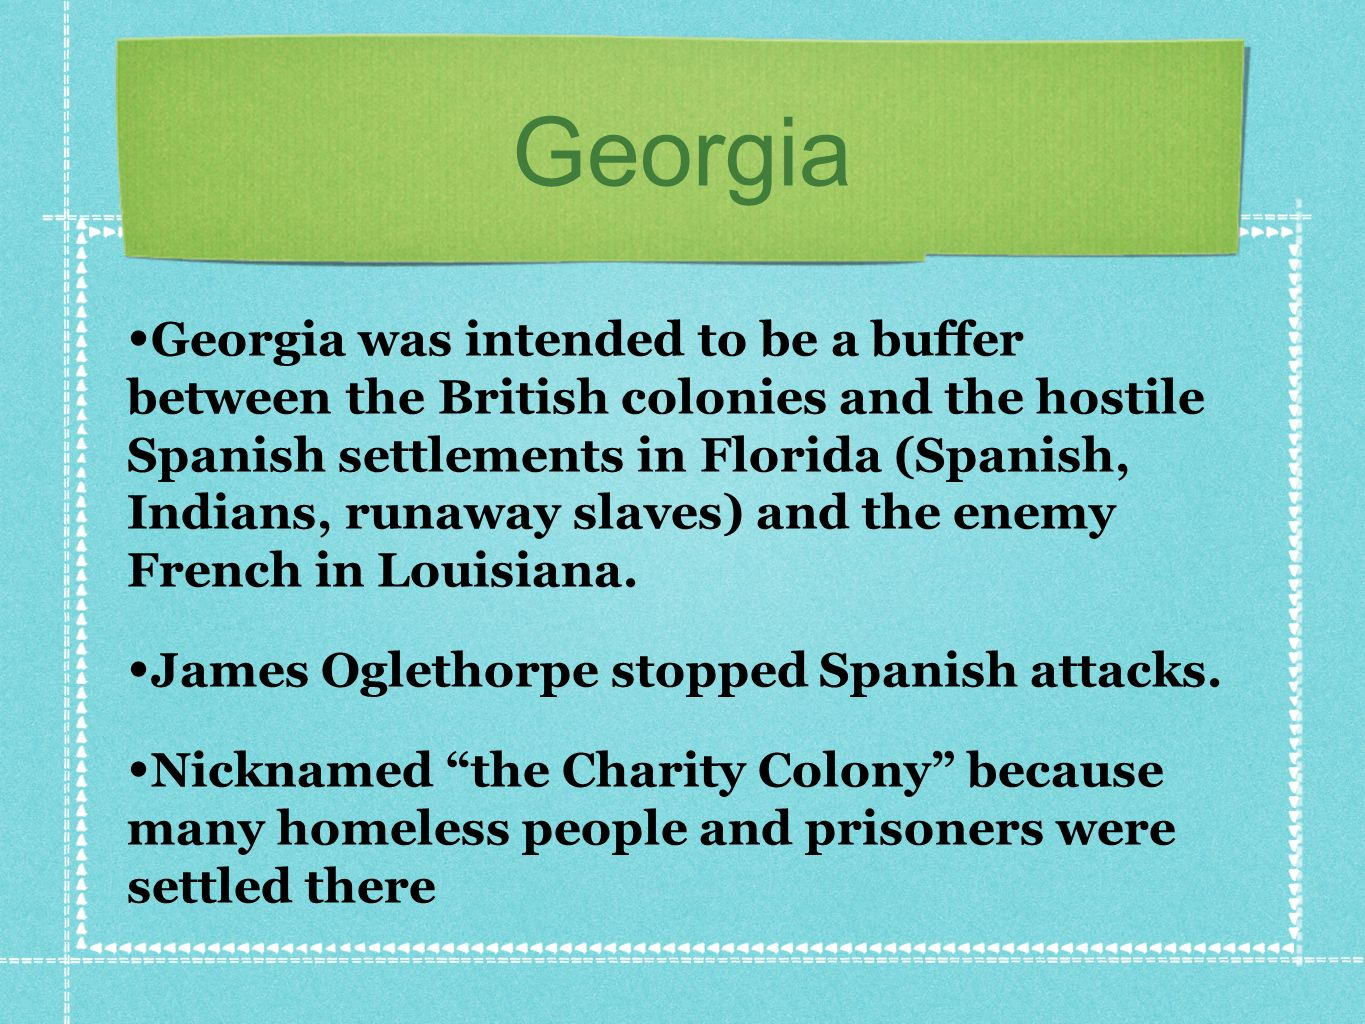 Georgia Georgia was intended to be a buffer between the British colonies and the hostile Spanish settlements in Florida (Spanish, Indians, runaway slaves) and the enemy French in Louisiana.